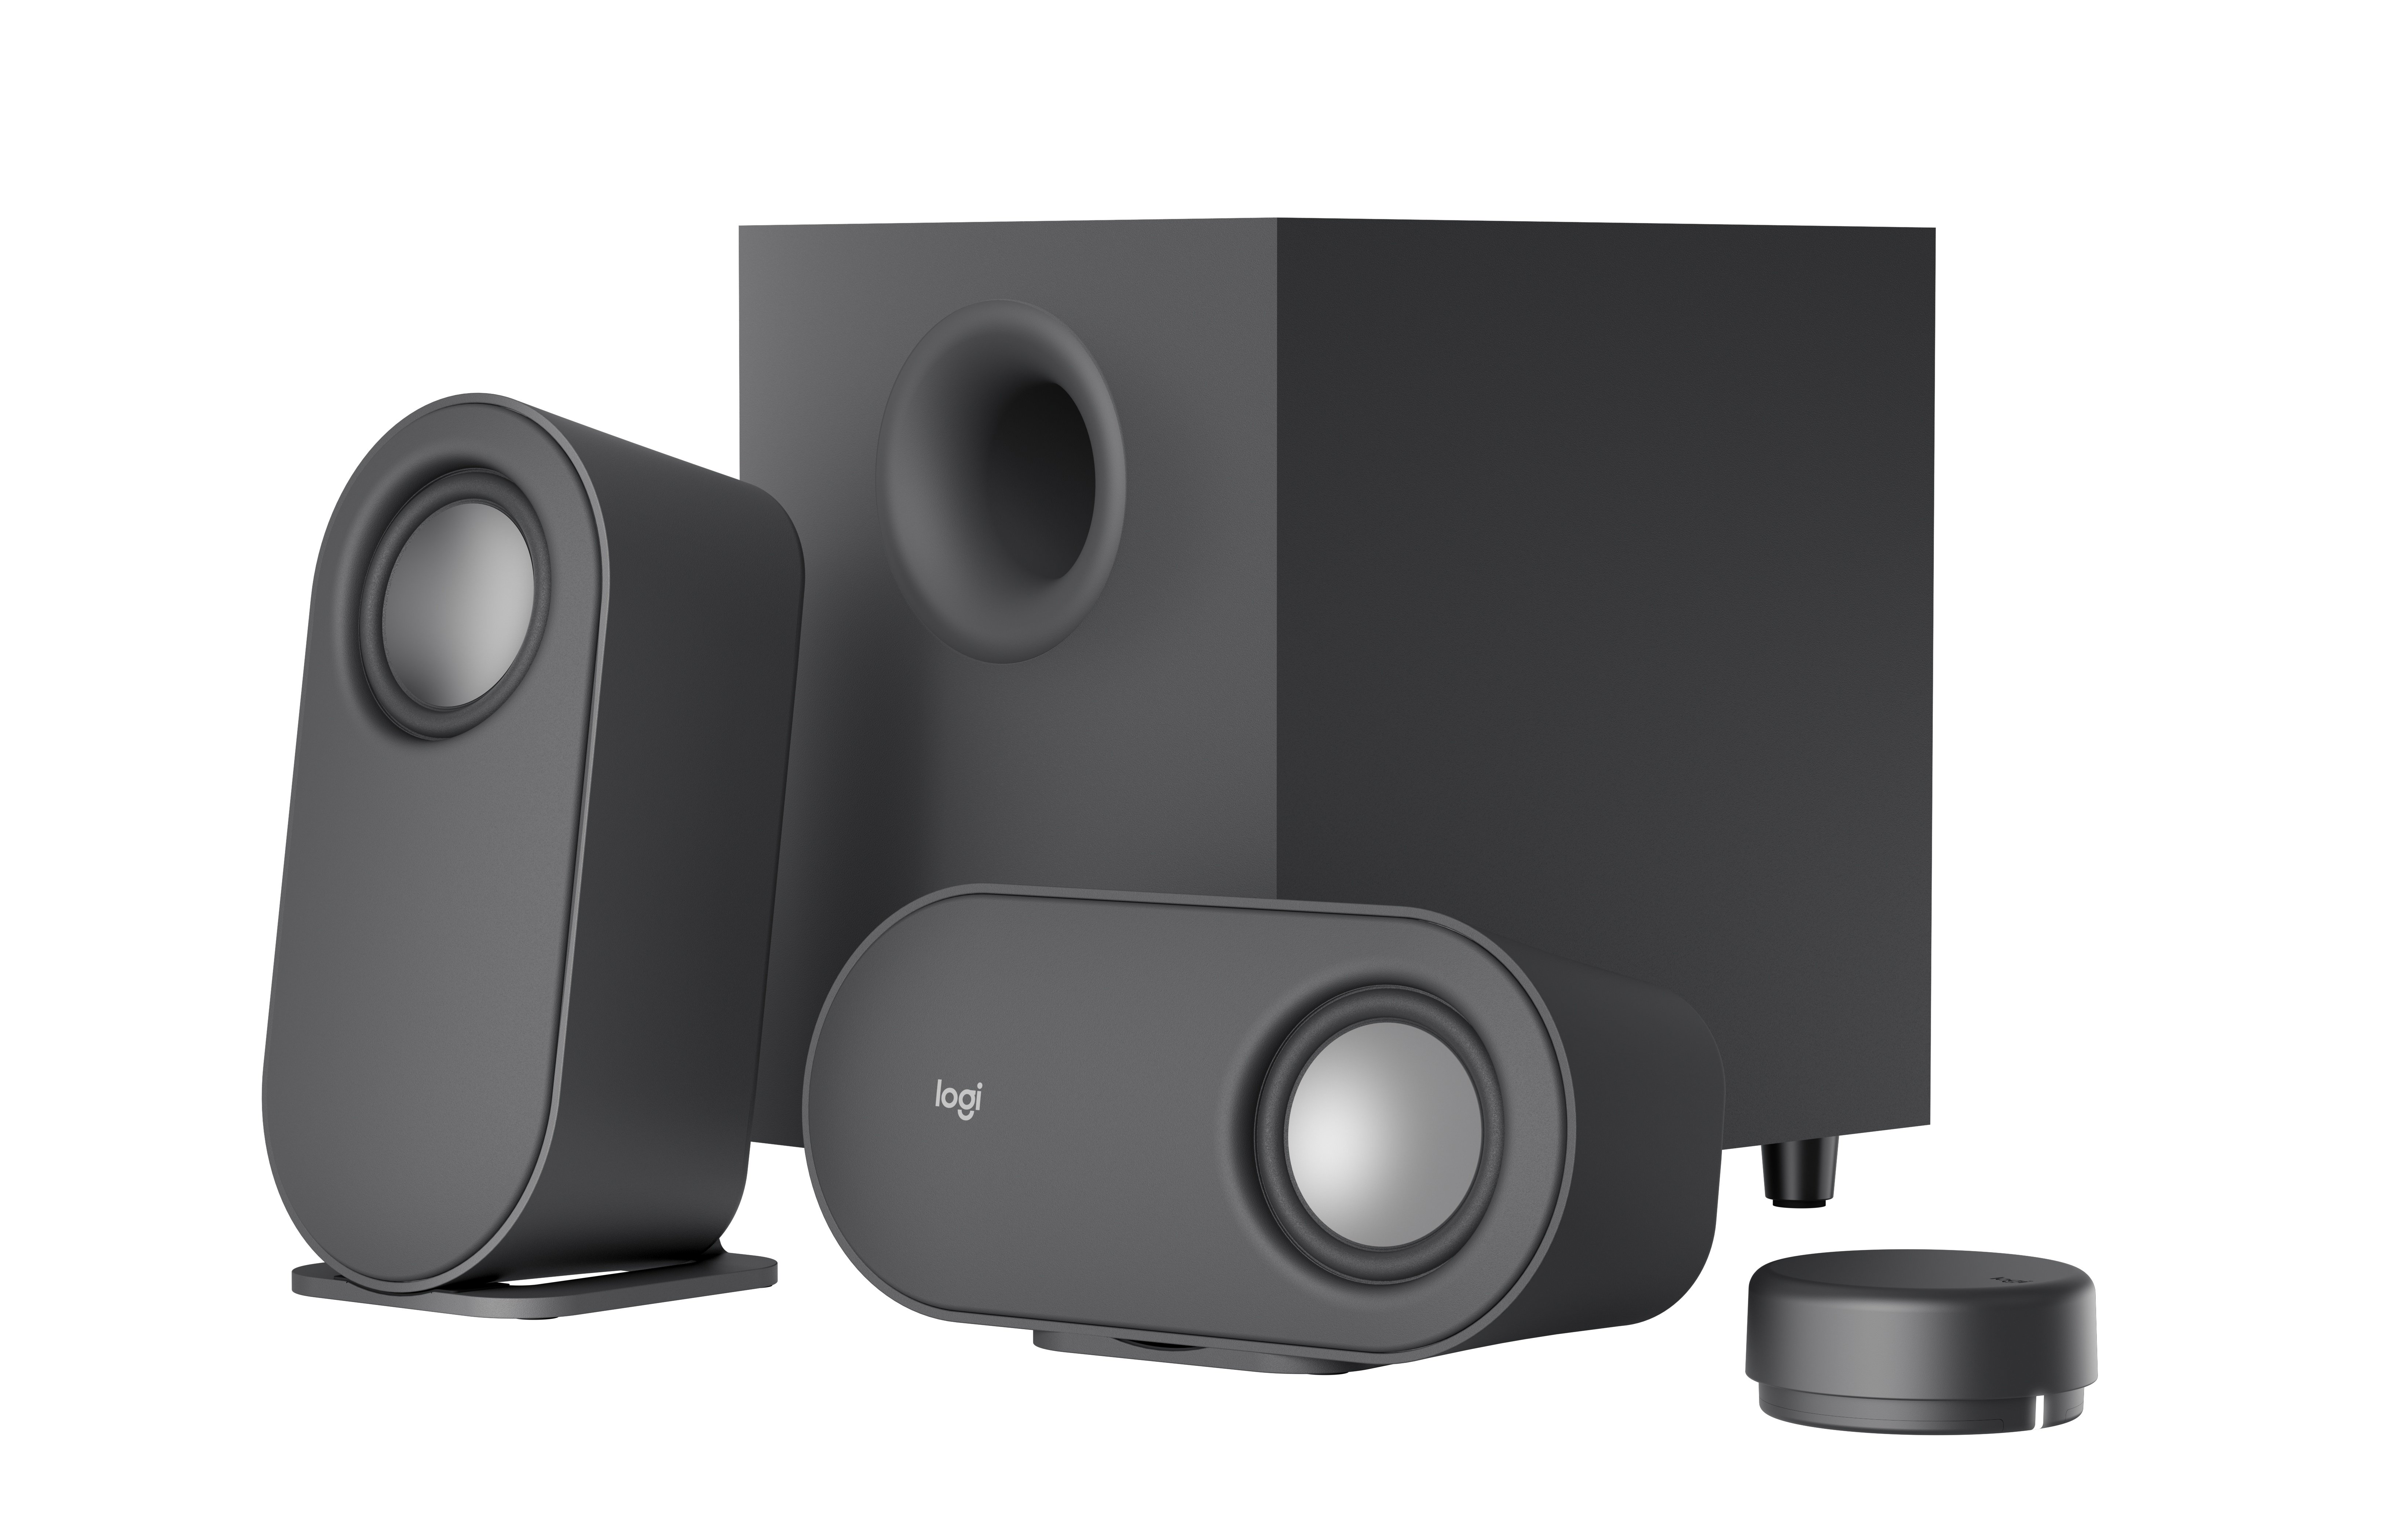 Logitech - Z407 Computer Speakers with Subwoofer and Bluetooth Connection - Graphite